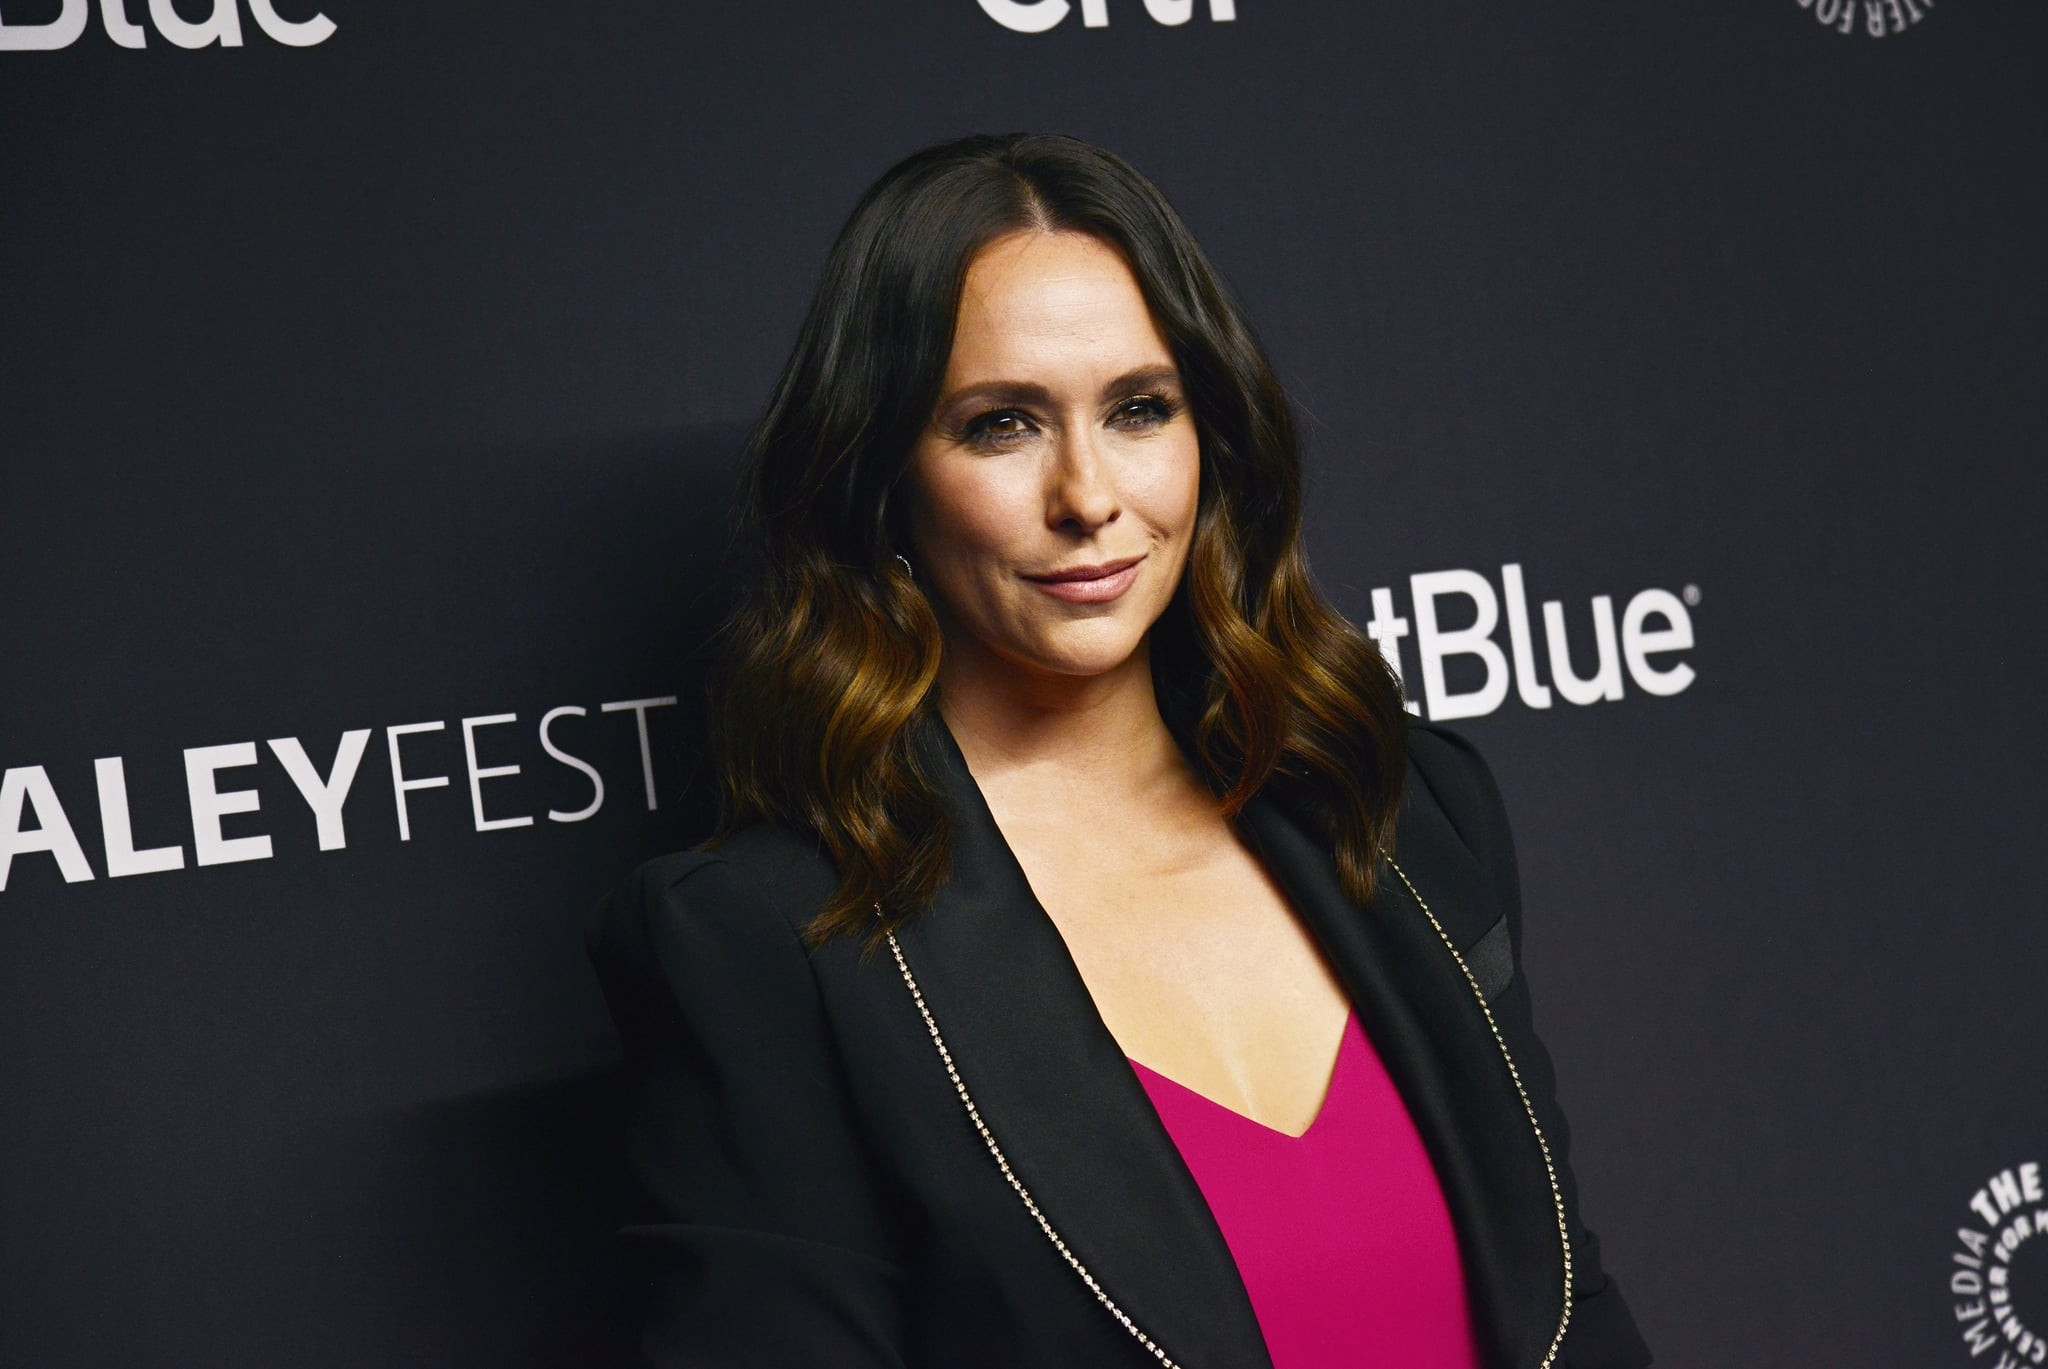 HOLLYWOOD, CALIFORNIA - MARCH 17: Actor Jennifer Love Hewitt attends the Paley Center For Media's 2019 PaleyFest LA -